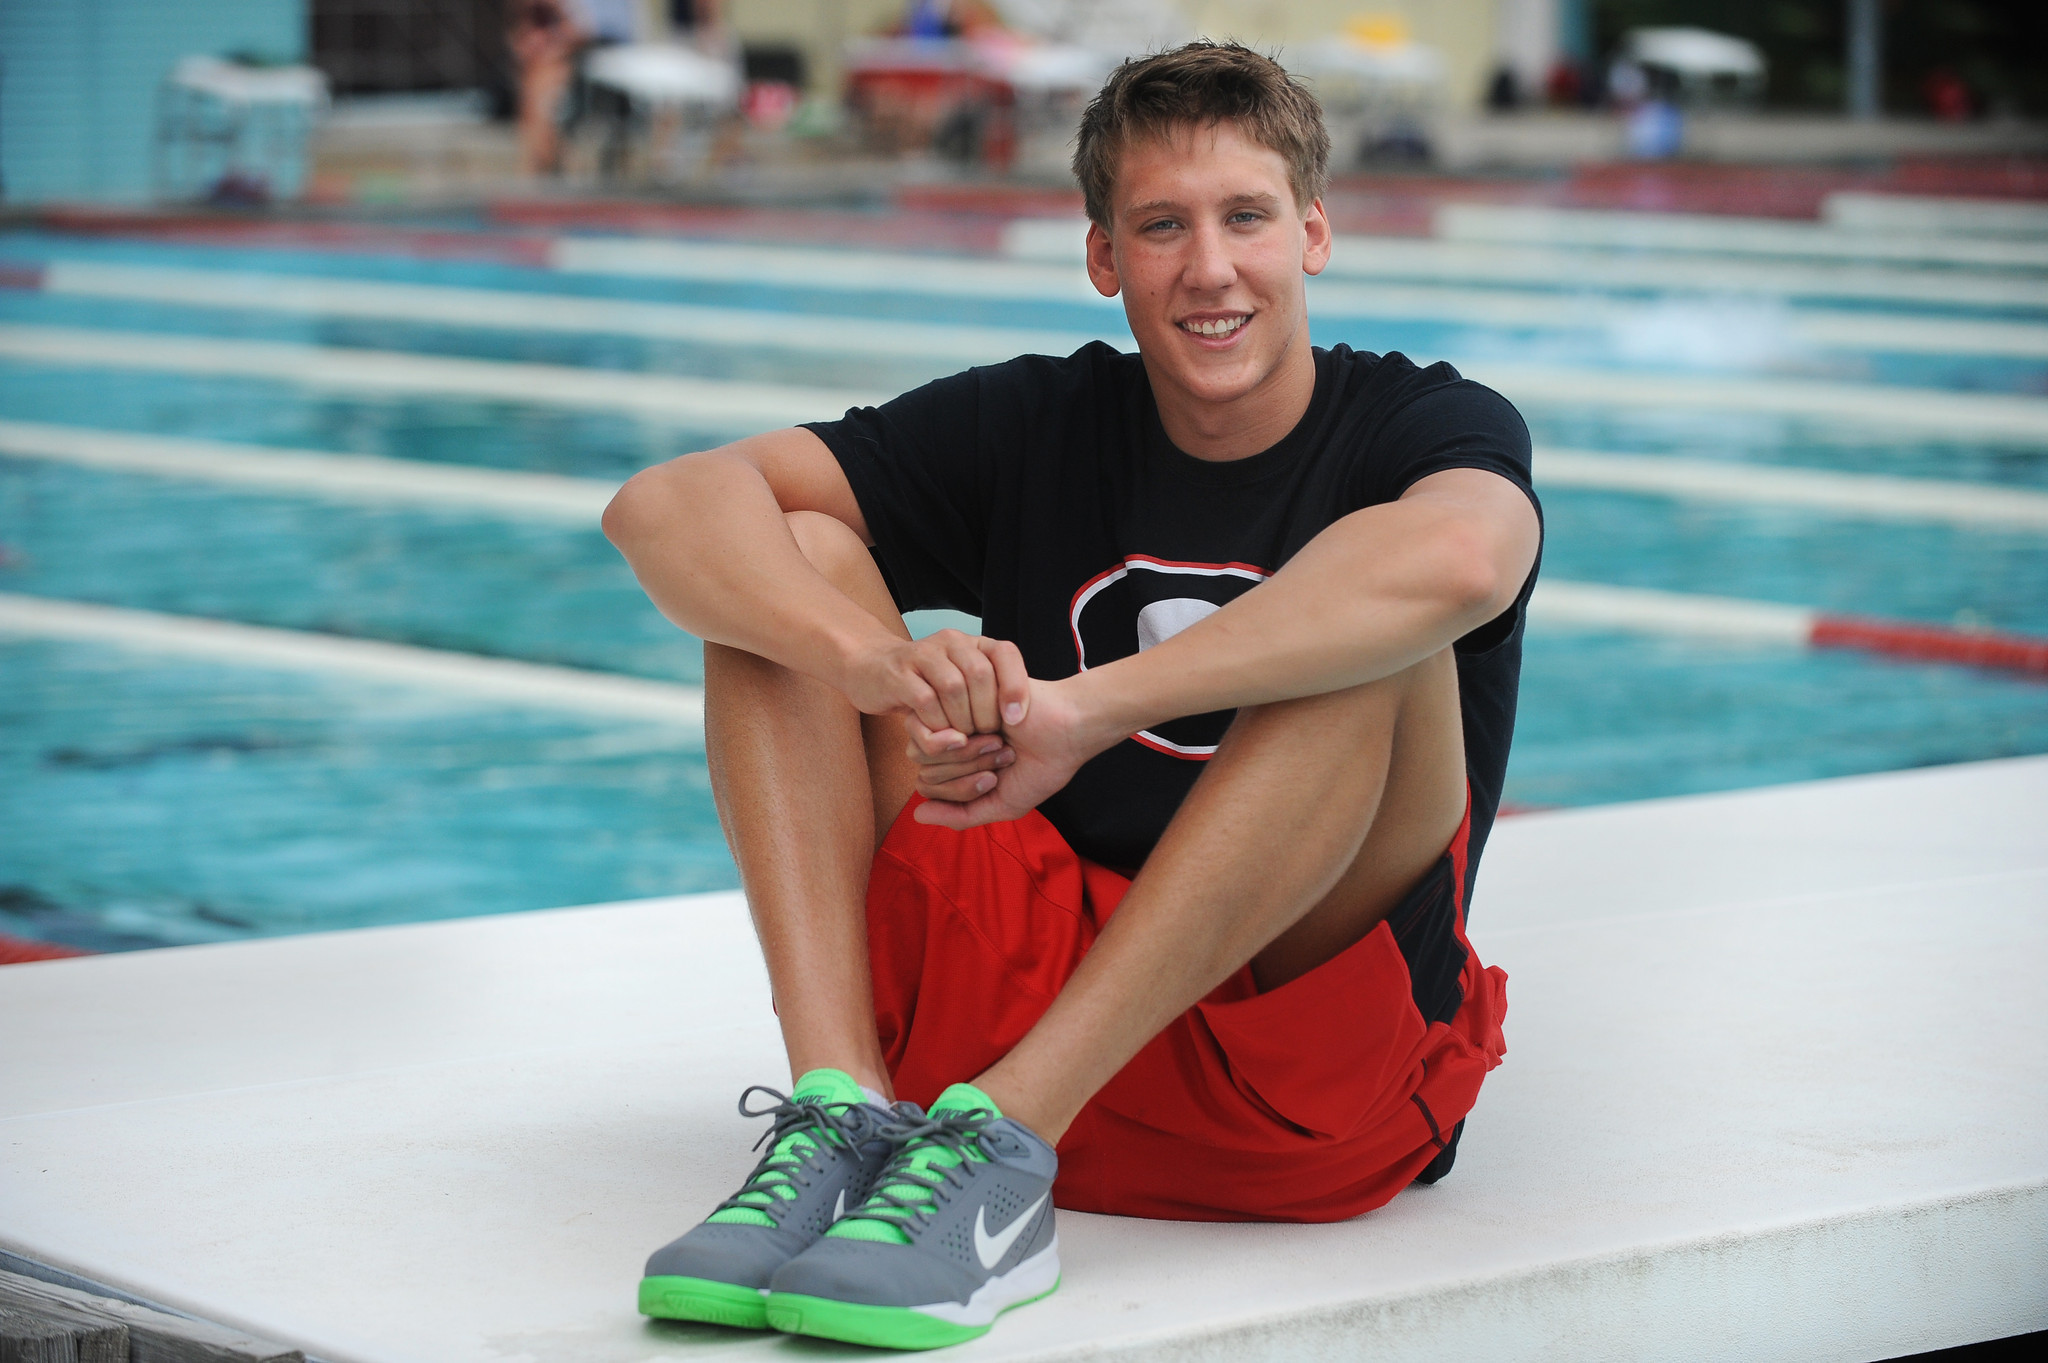 Emerging Swim Star Chase Kalisz Uses Lessons From Michael Phelps Baltimore Sun